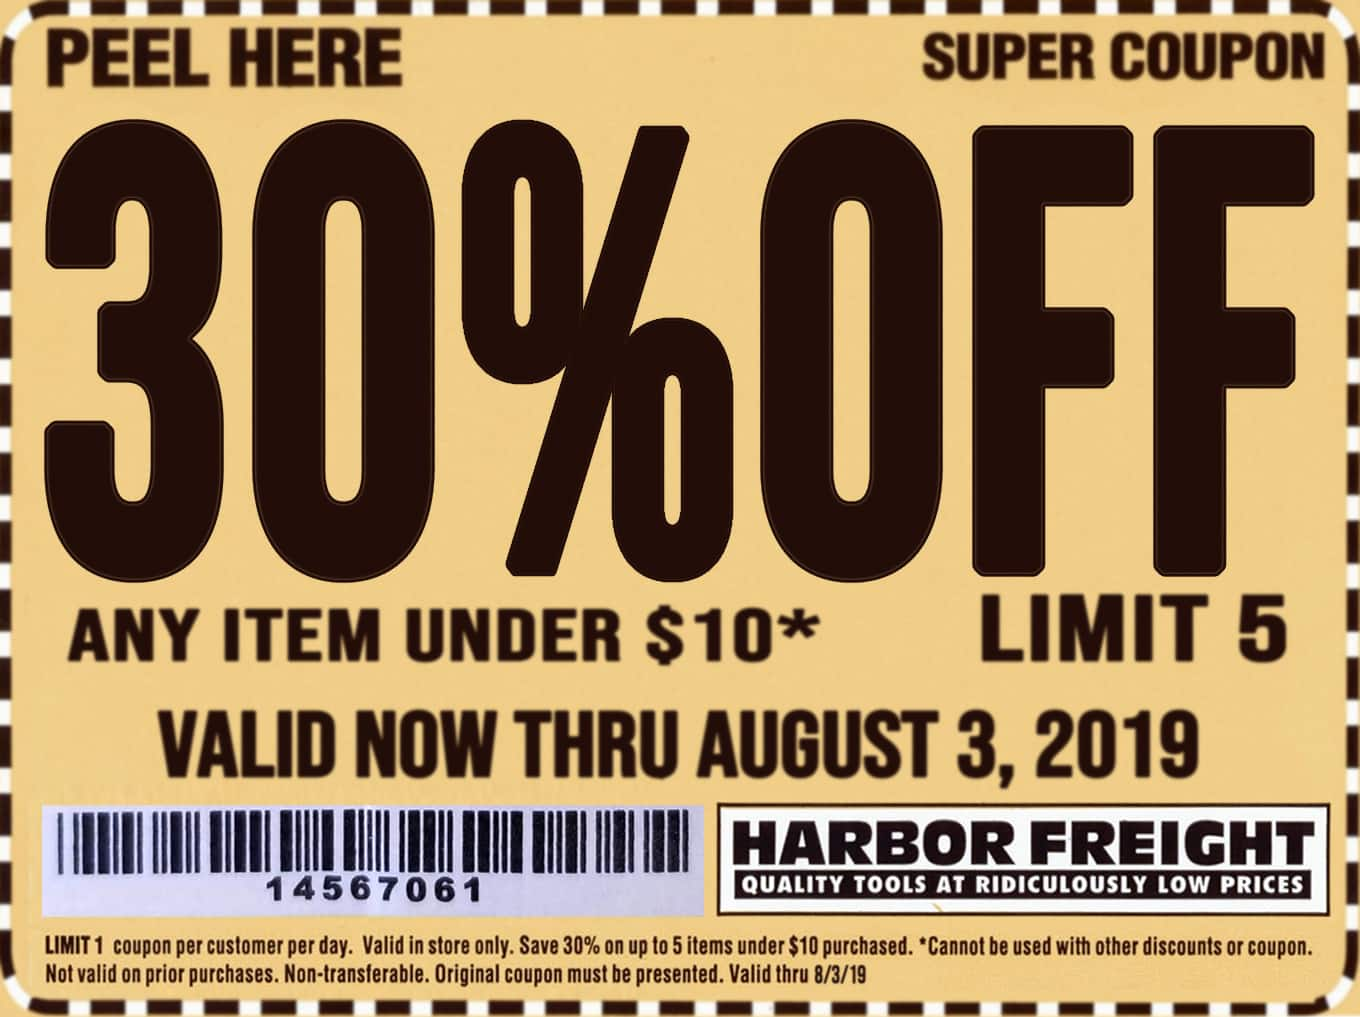 30% off coupon Any item under $10 Harbor Freight Expires Aug 3 @harborfreight